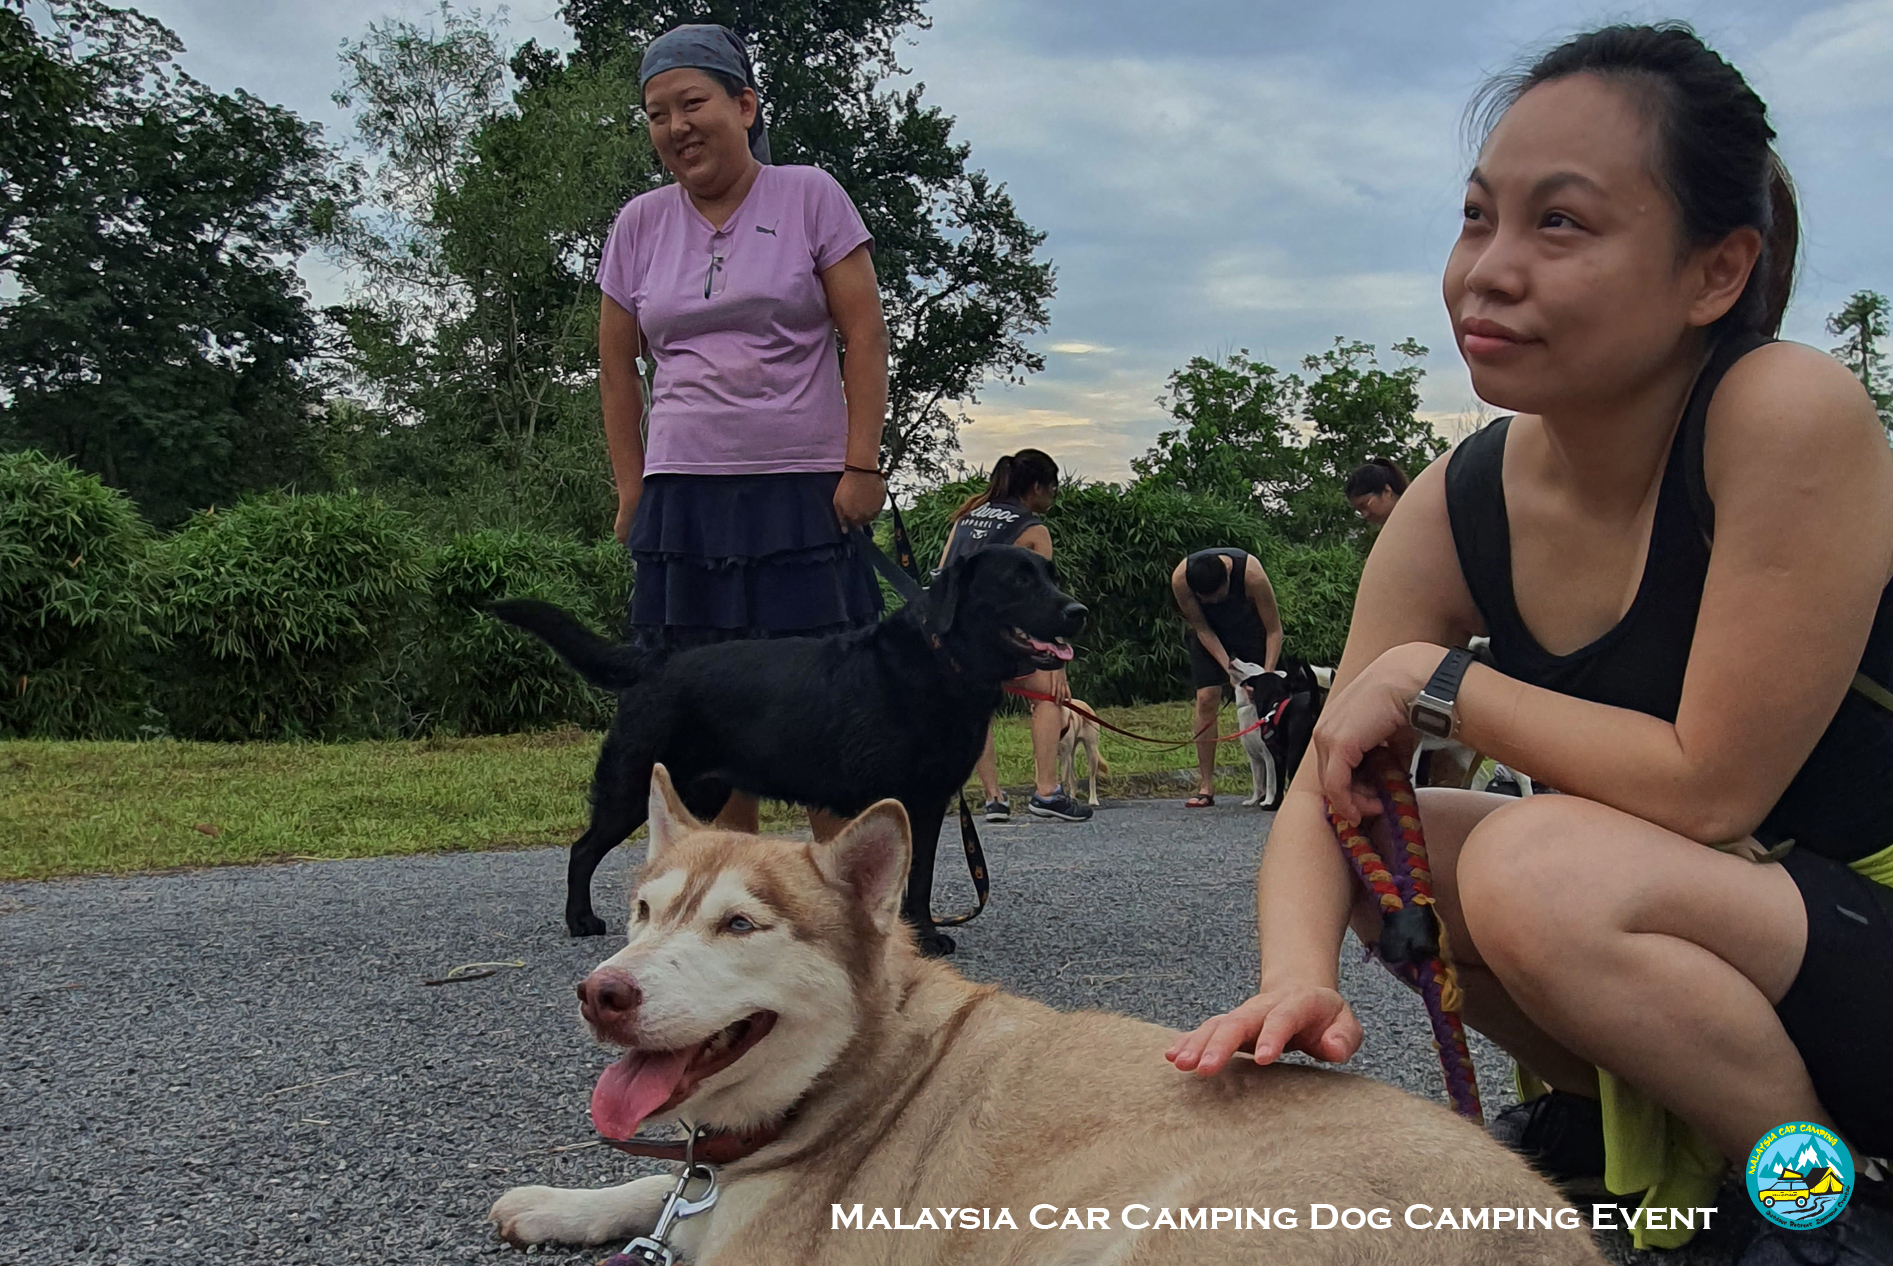 hiking_with_dog_malaysia_dog_camping_event_selangor_camping_site_malaysia_car_camping_private_event_organizer-1